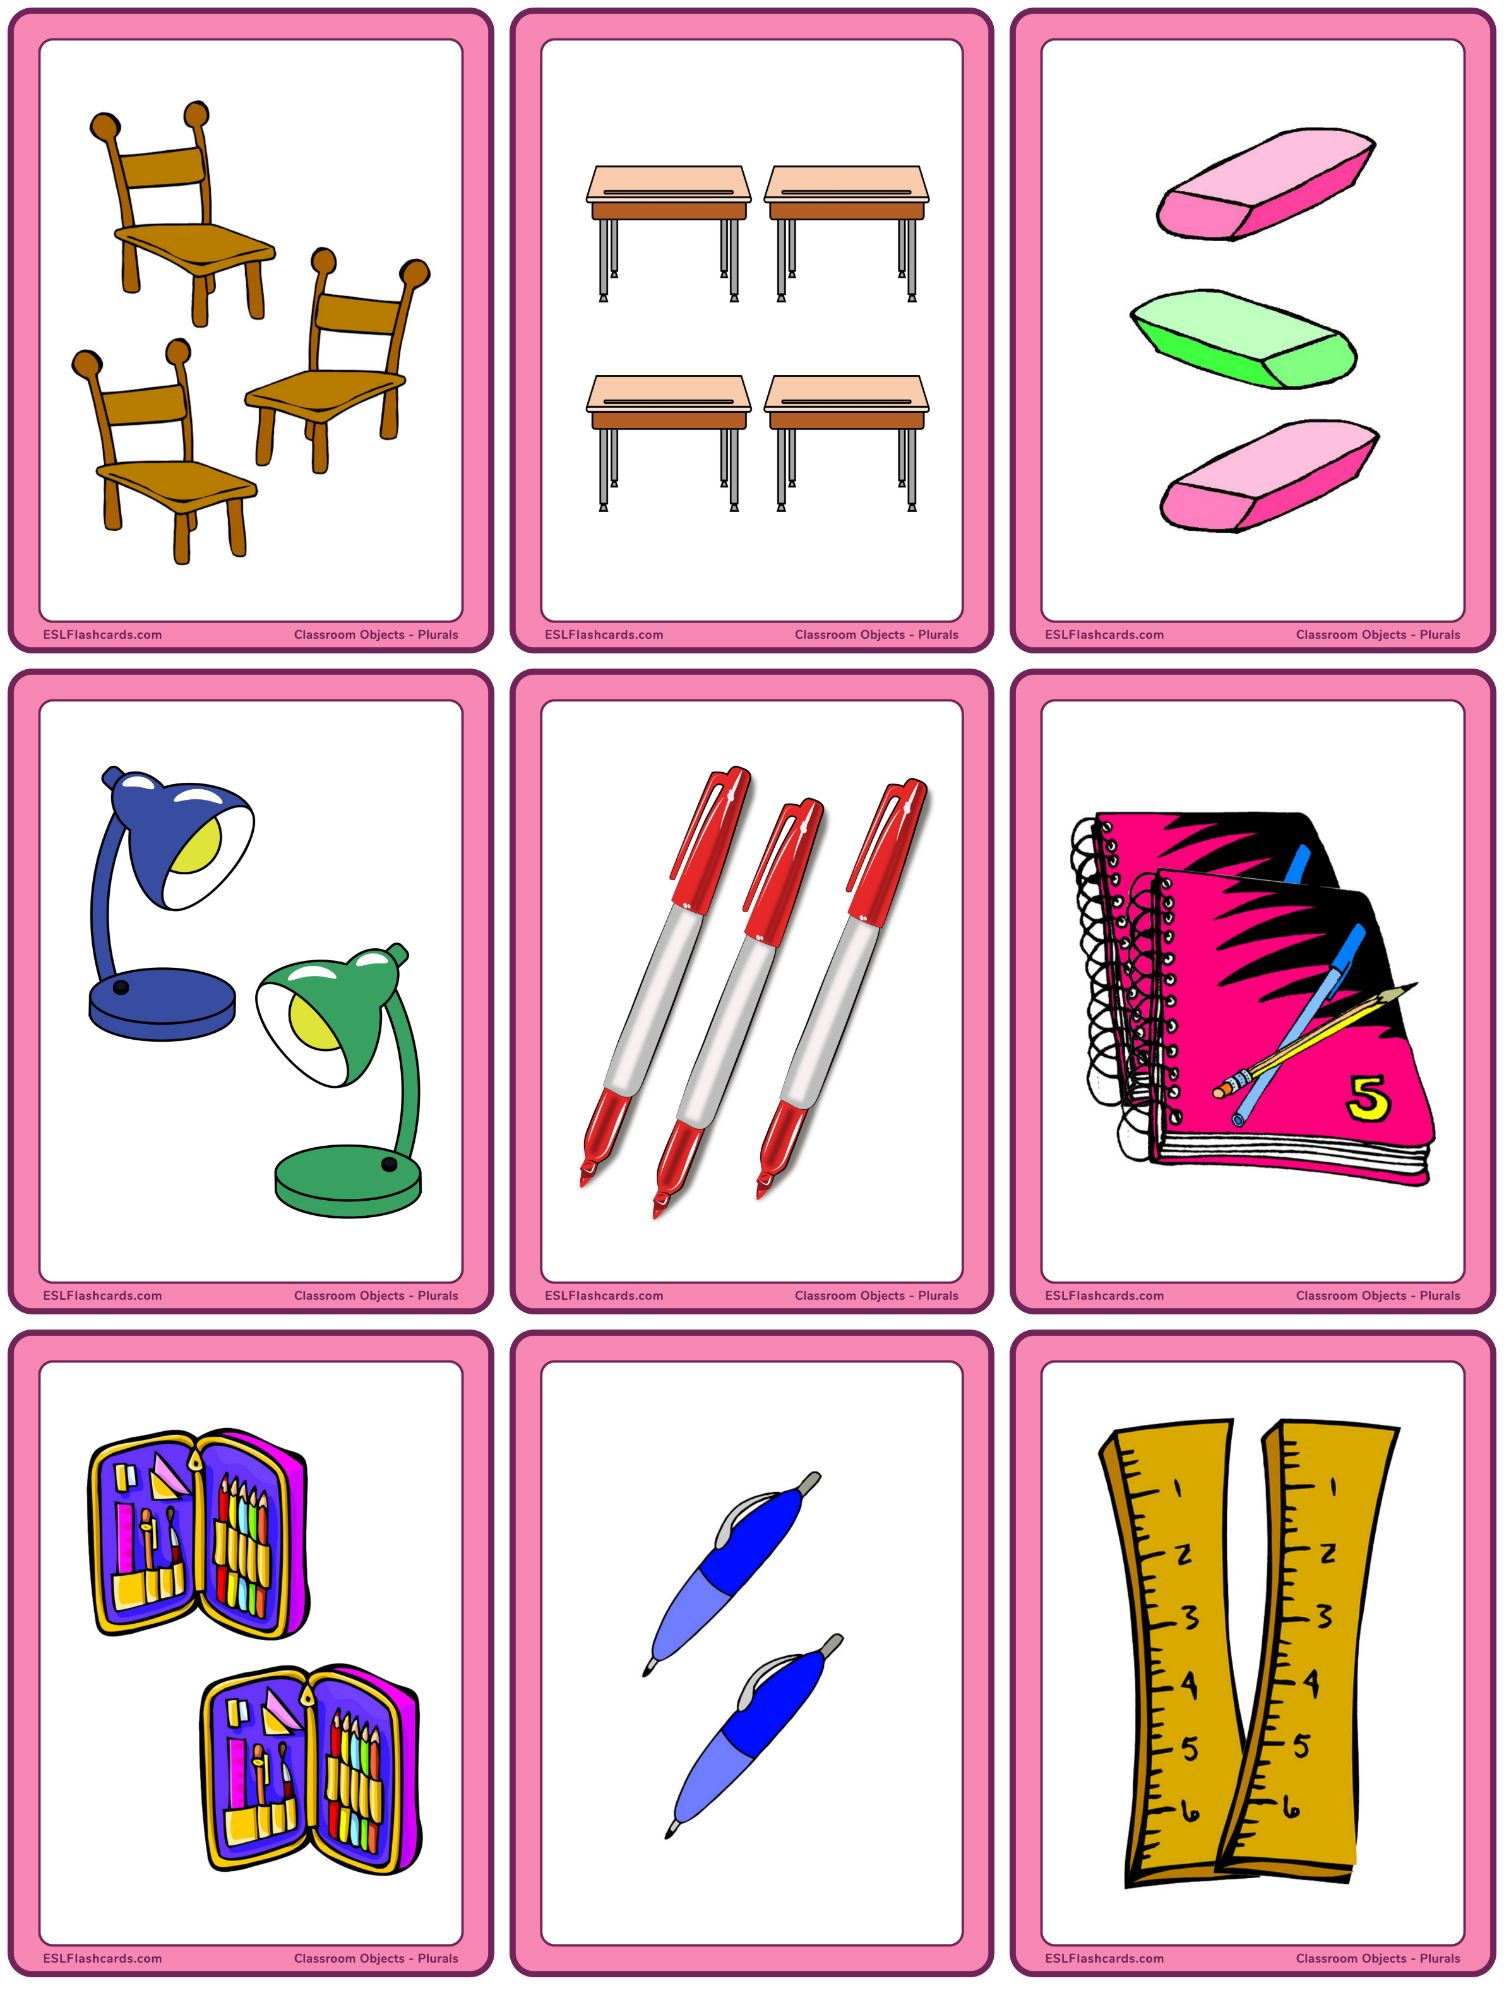 Classroom Objects Plural Nouns Esl Flashcards